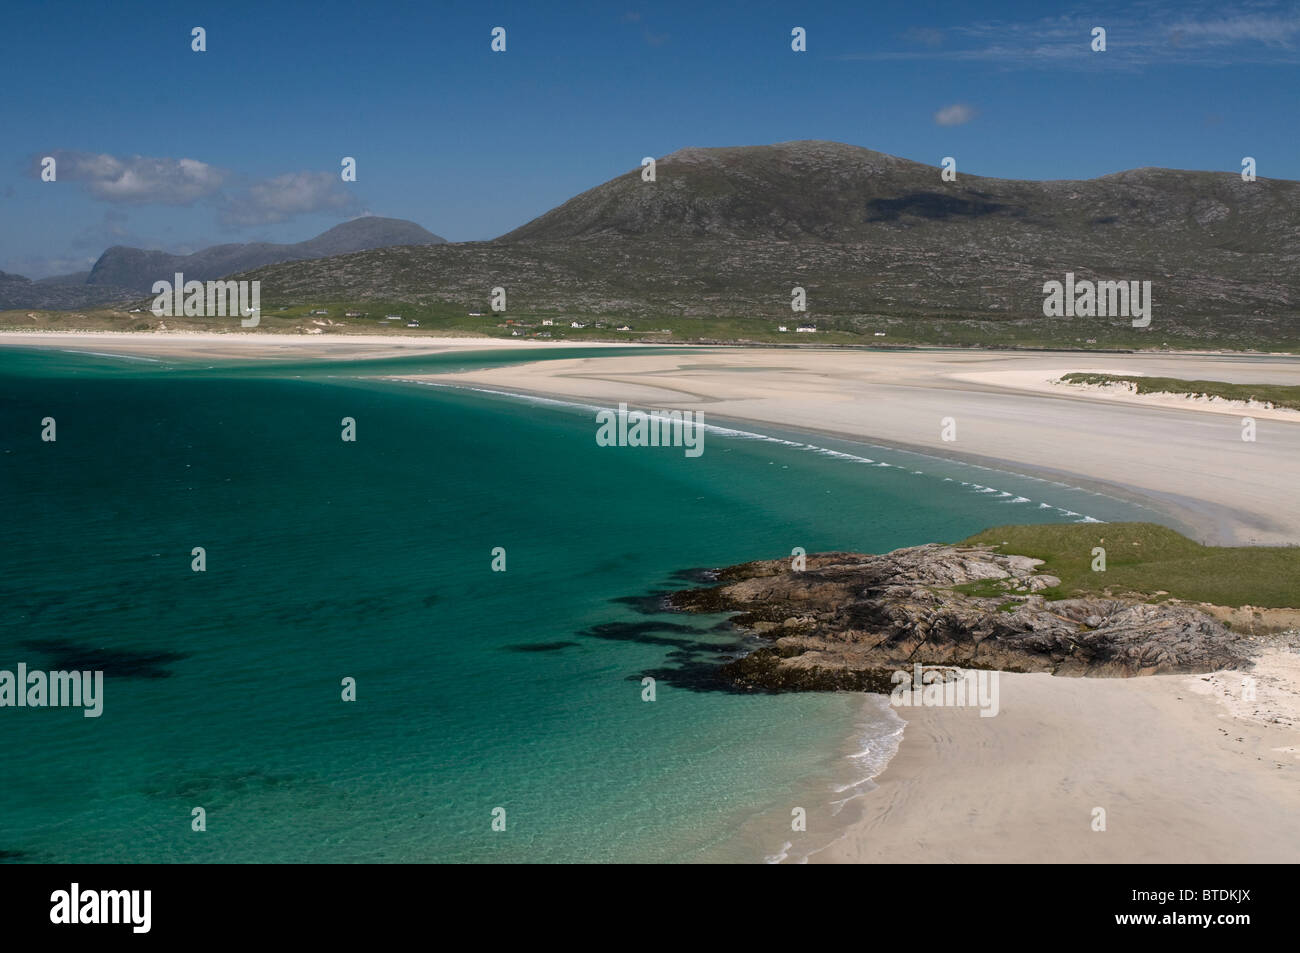 Traigh Sheileboist extensive sands and beach, west Harris, Outer Hebrides, Western Isles Scotland - Stock Image